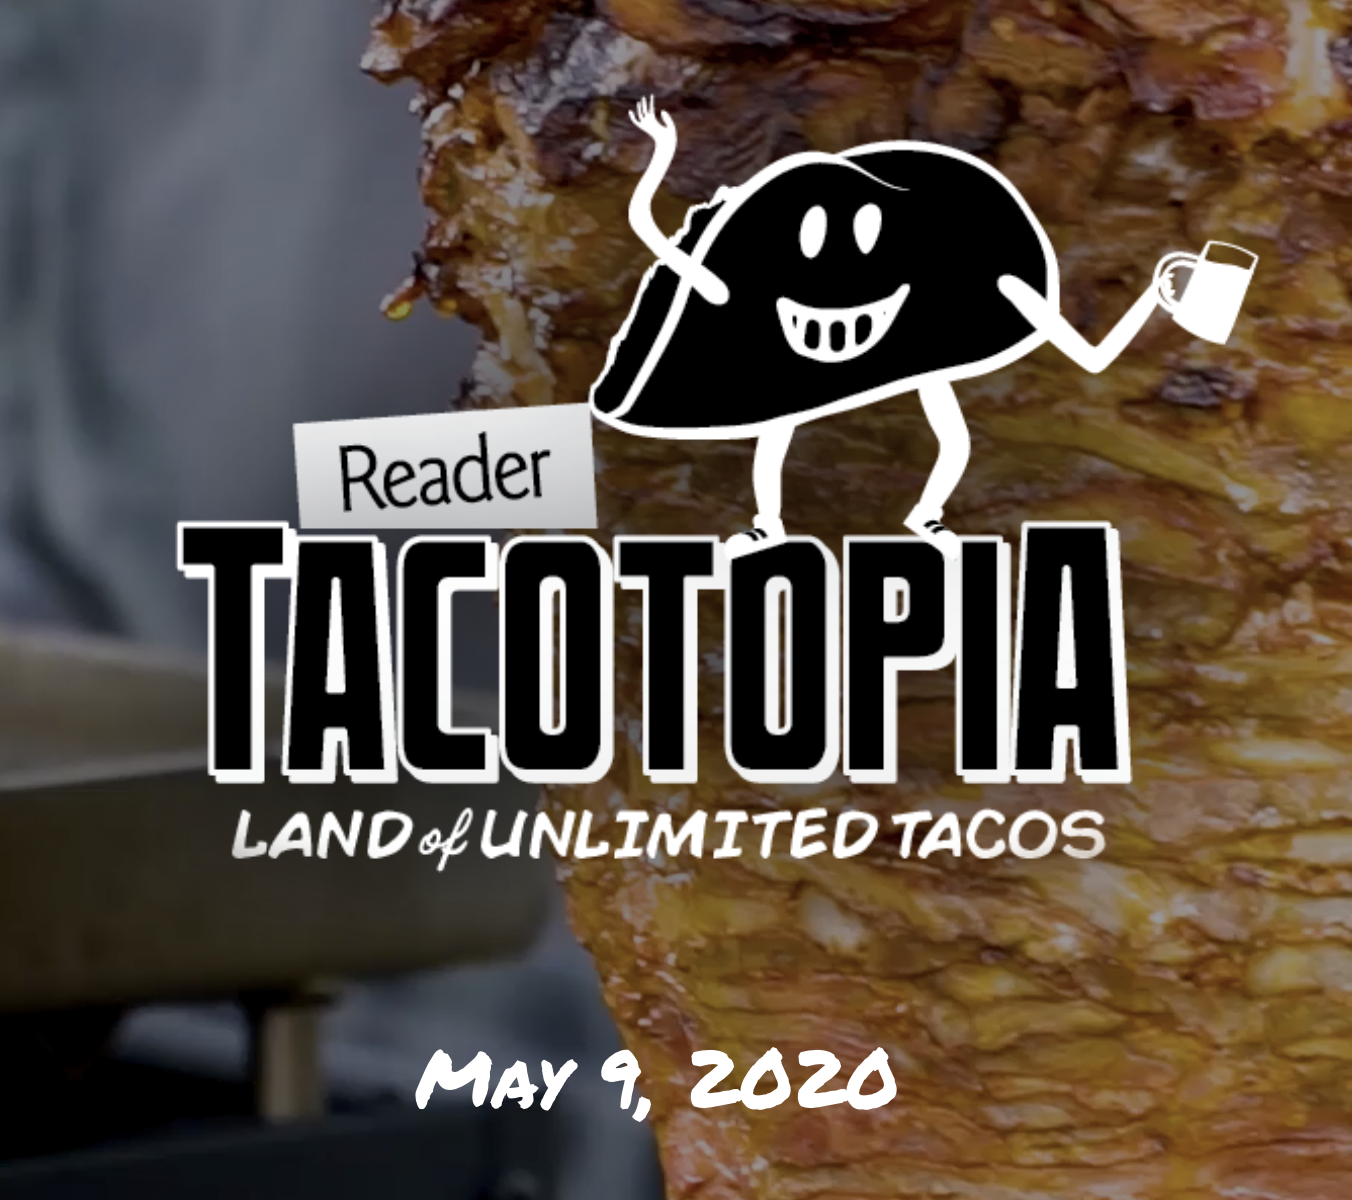 Save on passes & Enter to win VIP tickets to San Diego Reader Tacotopia 2020, taking place May 9!